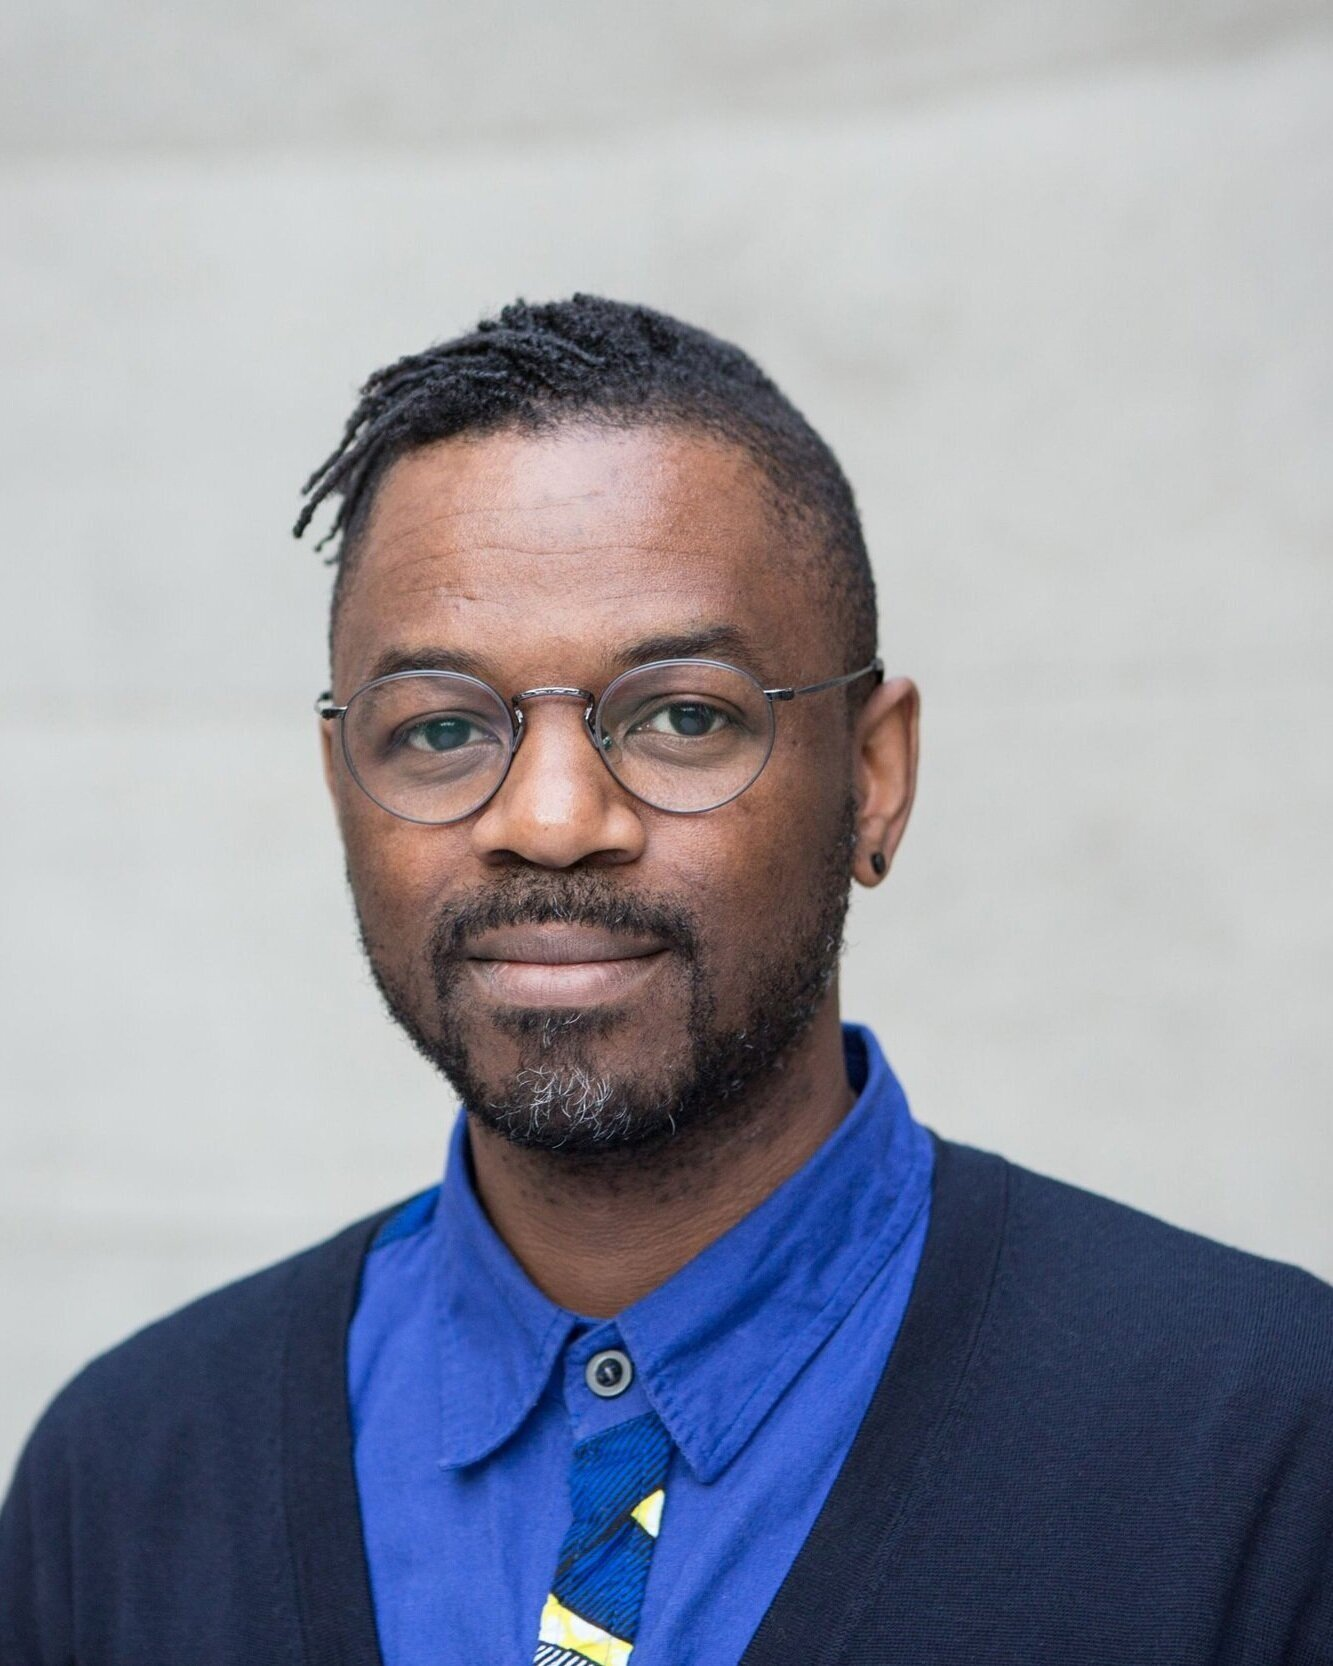 Themba Bhebhe - After working for almost a decade in international film sales, Themba has been in charge of Diversity & Inclusion at the last two editions of the European Film Market (Berlinale). His work comprises curating and programming a series of events on the market relevance of diversity and inclusion across the EFM's industry platforms, collaborating on events with other Berlinale-internal and external organizations and knowledge partners, creating awareness and visibility for all programmes, actions and promotions of D&I across all the Berlinale's different entities and liaising with delegations formed by underrepresented groups.At the 2019 Durban FilmMart, Themba will spearhead Engage @ DFM, a series of curated think tank conversations on the pertinent, challenging and multi-faceted questions facing the African film industry which will be shared with delegates over four days for input and debate.Themba is also one of the founding members of the Programmers of Colour Collective (POC2) that aims at creating a conversation around and working towards a more diverse and inclusive programming pool at international film festivals through research, awareness events, networking, profile raising, mentoring and shadowing.I am working with imagineNATIVE in connection with the EFM Indigenous Cinema Stand.